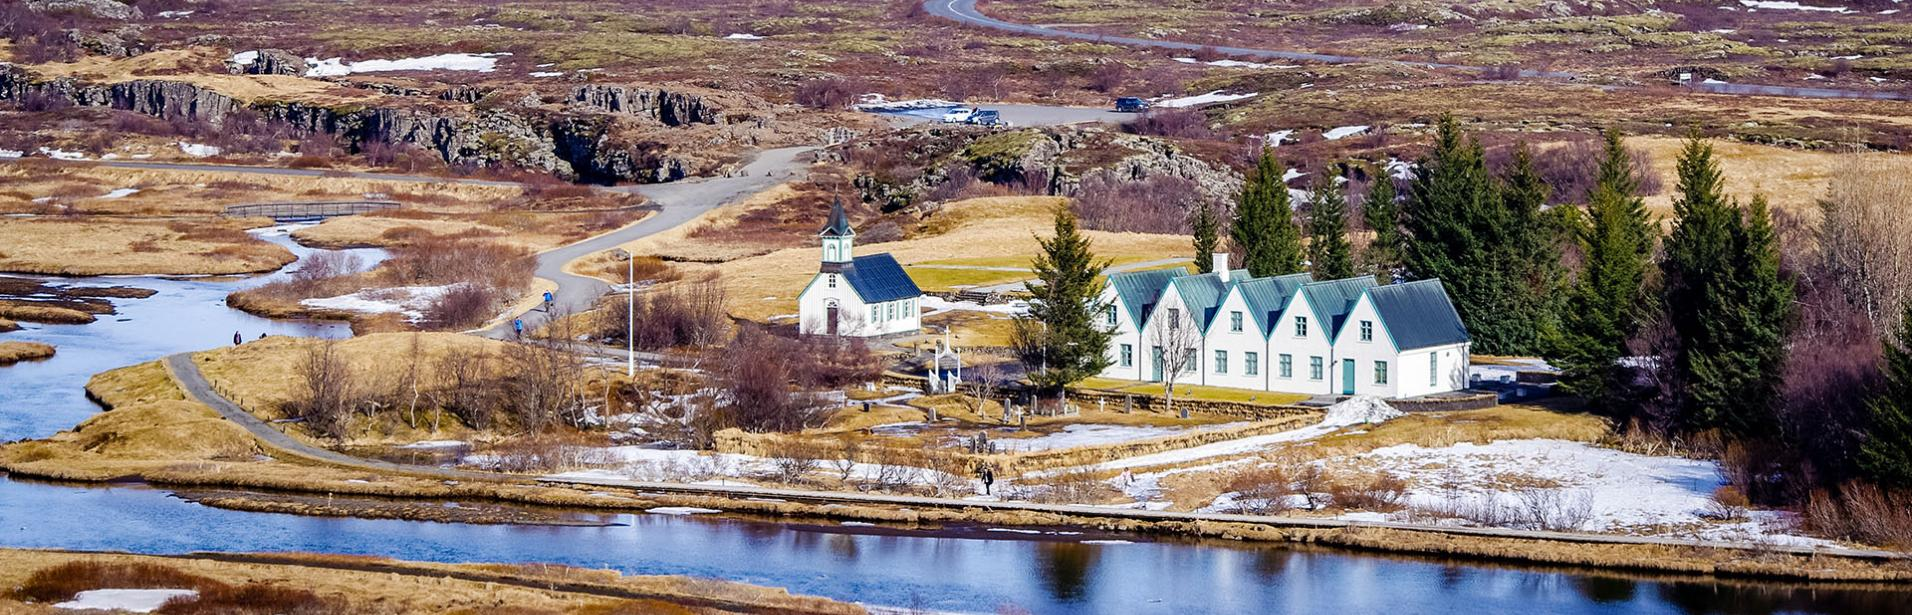 thingvellir, island, vinter